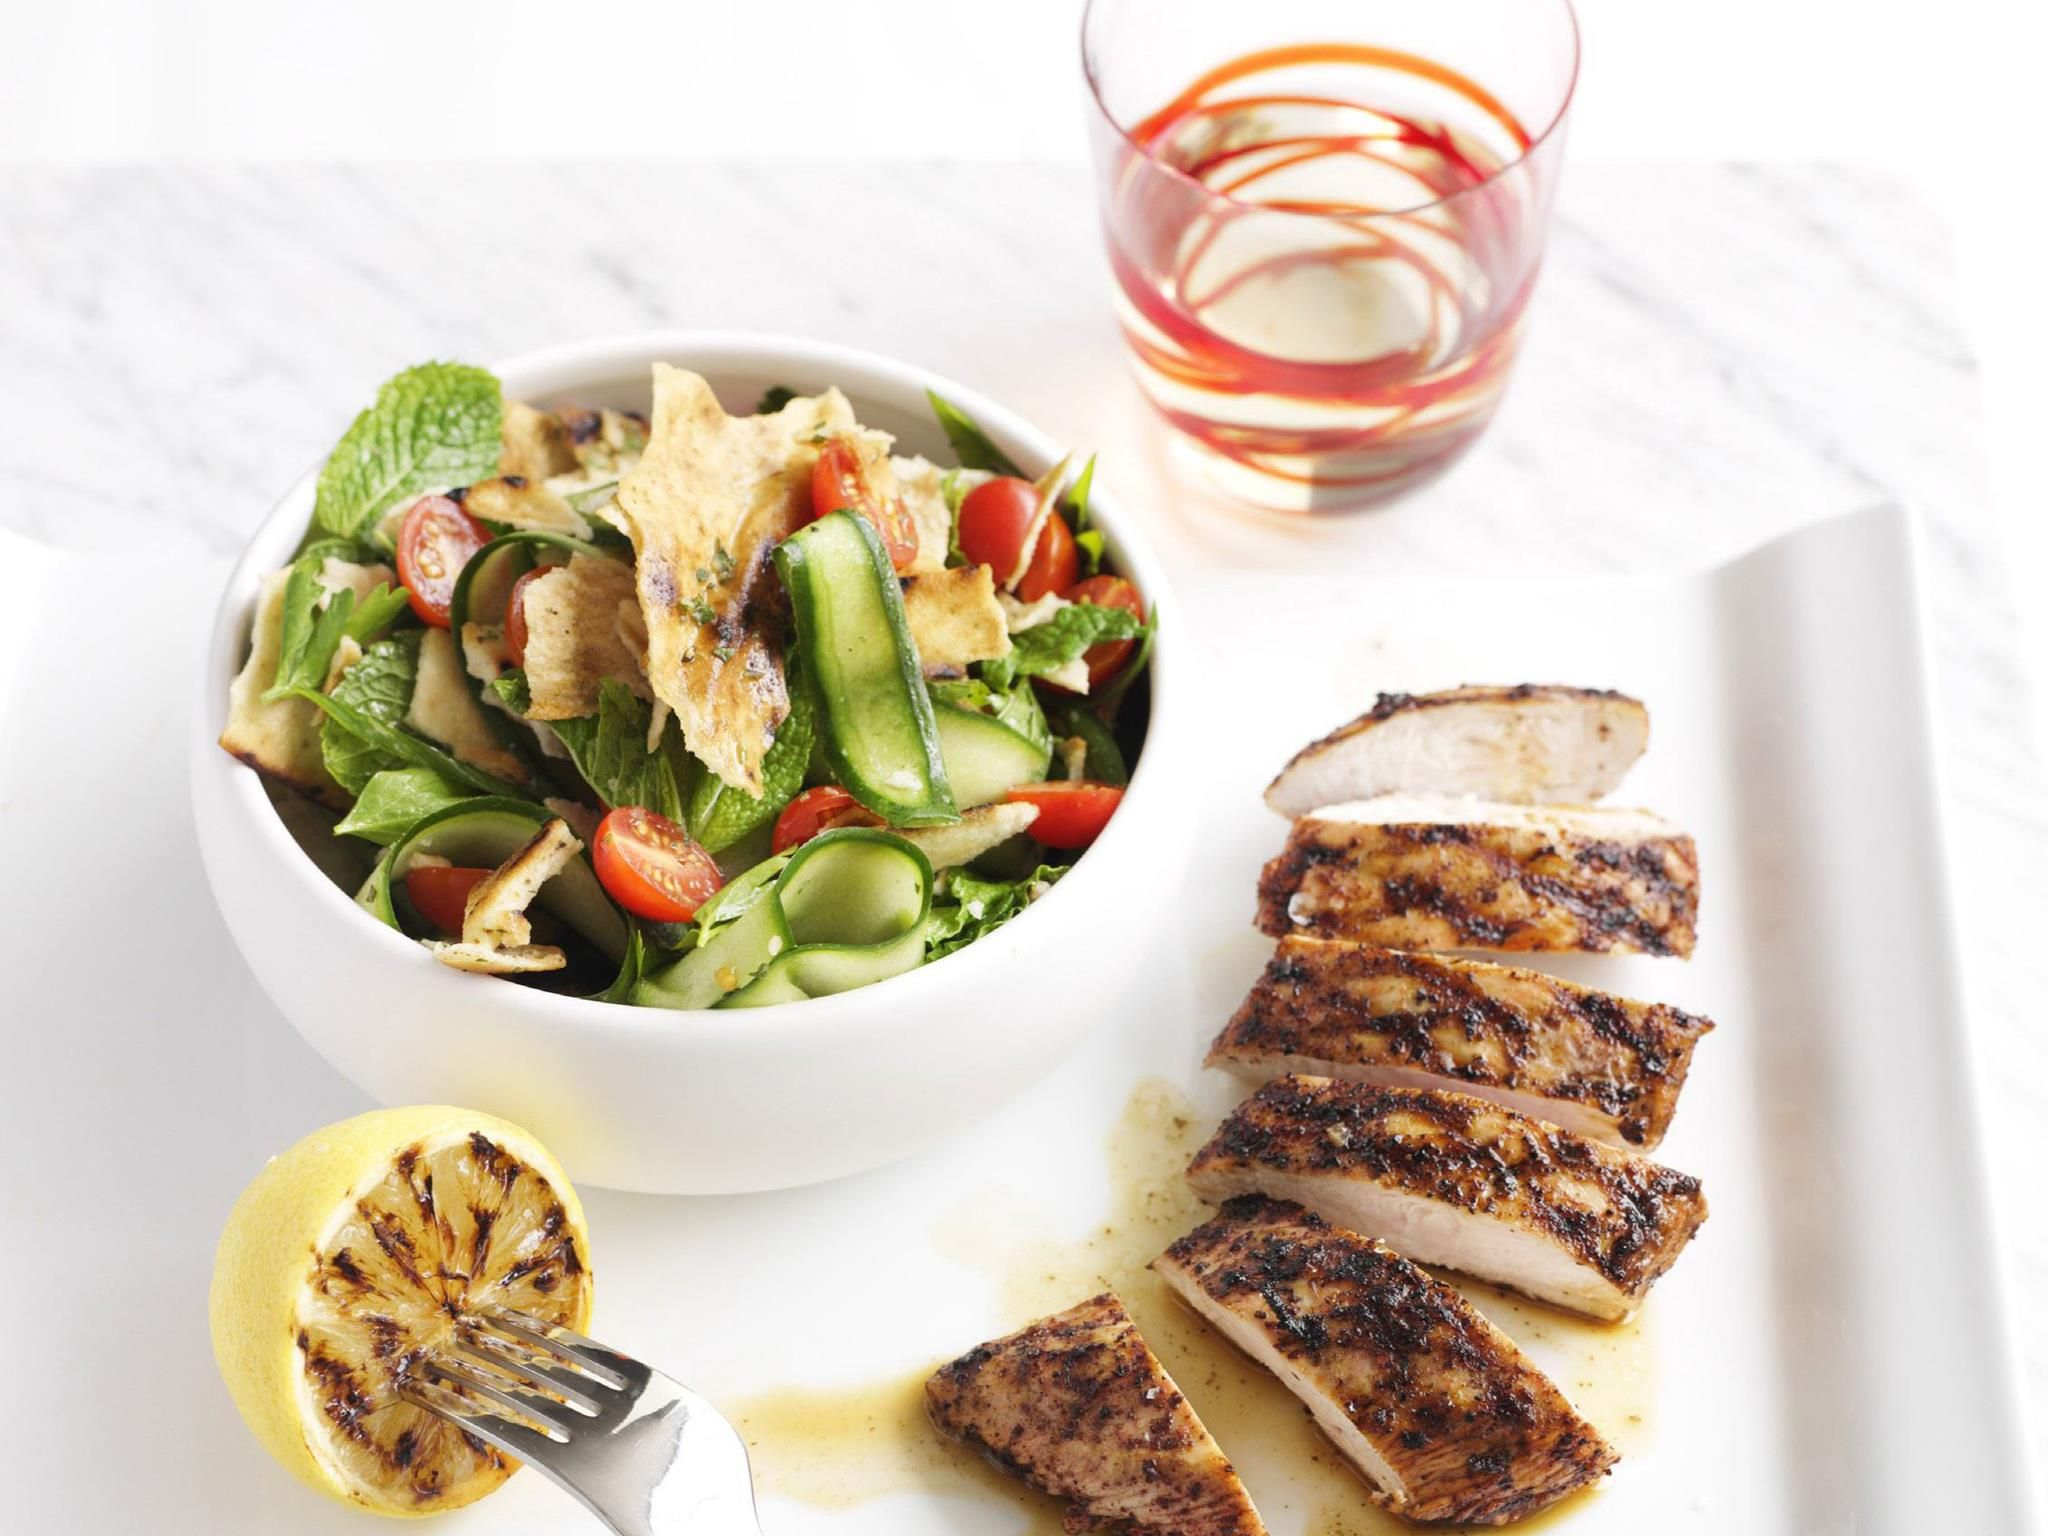 Barbecued chicken with a fresh, herby, minted tomato salad is a weekend lunchtime winner.